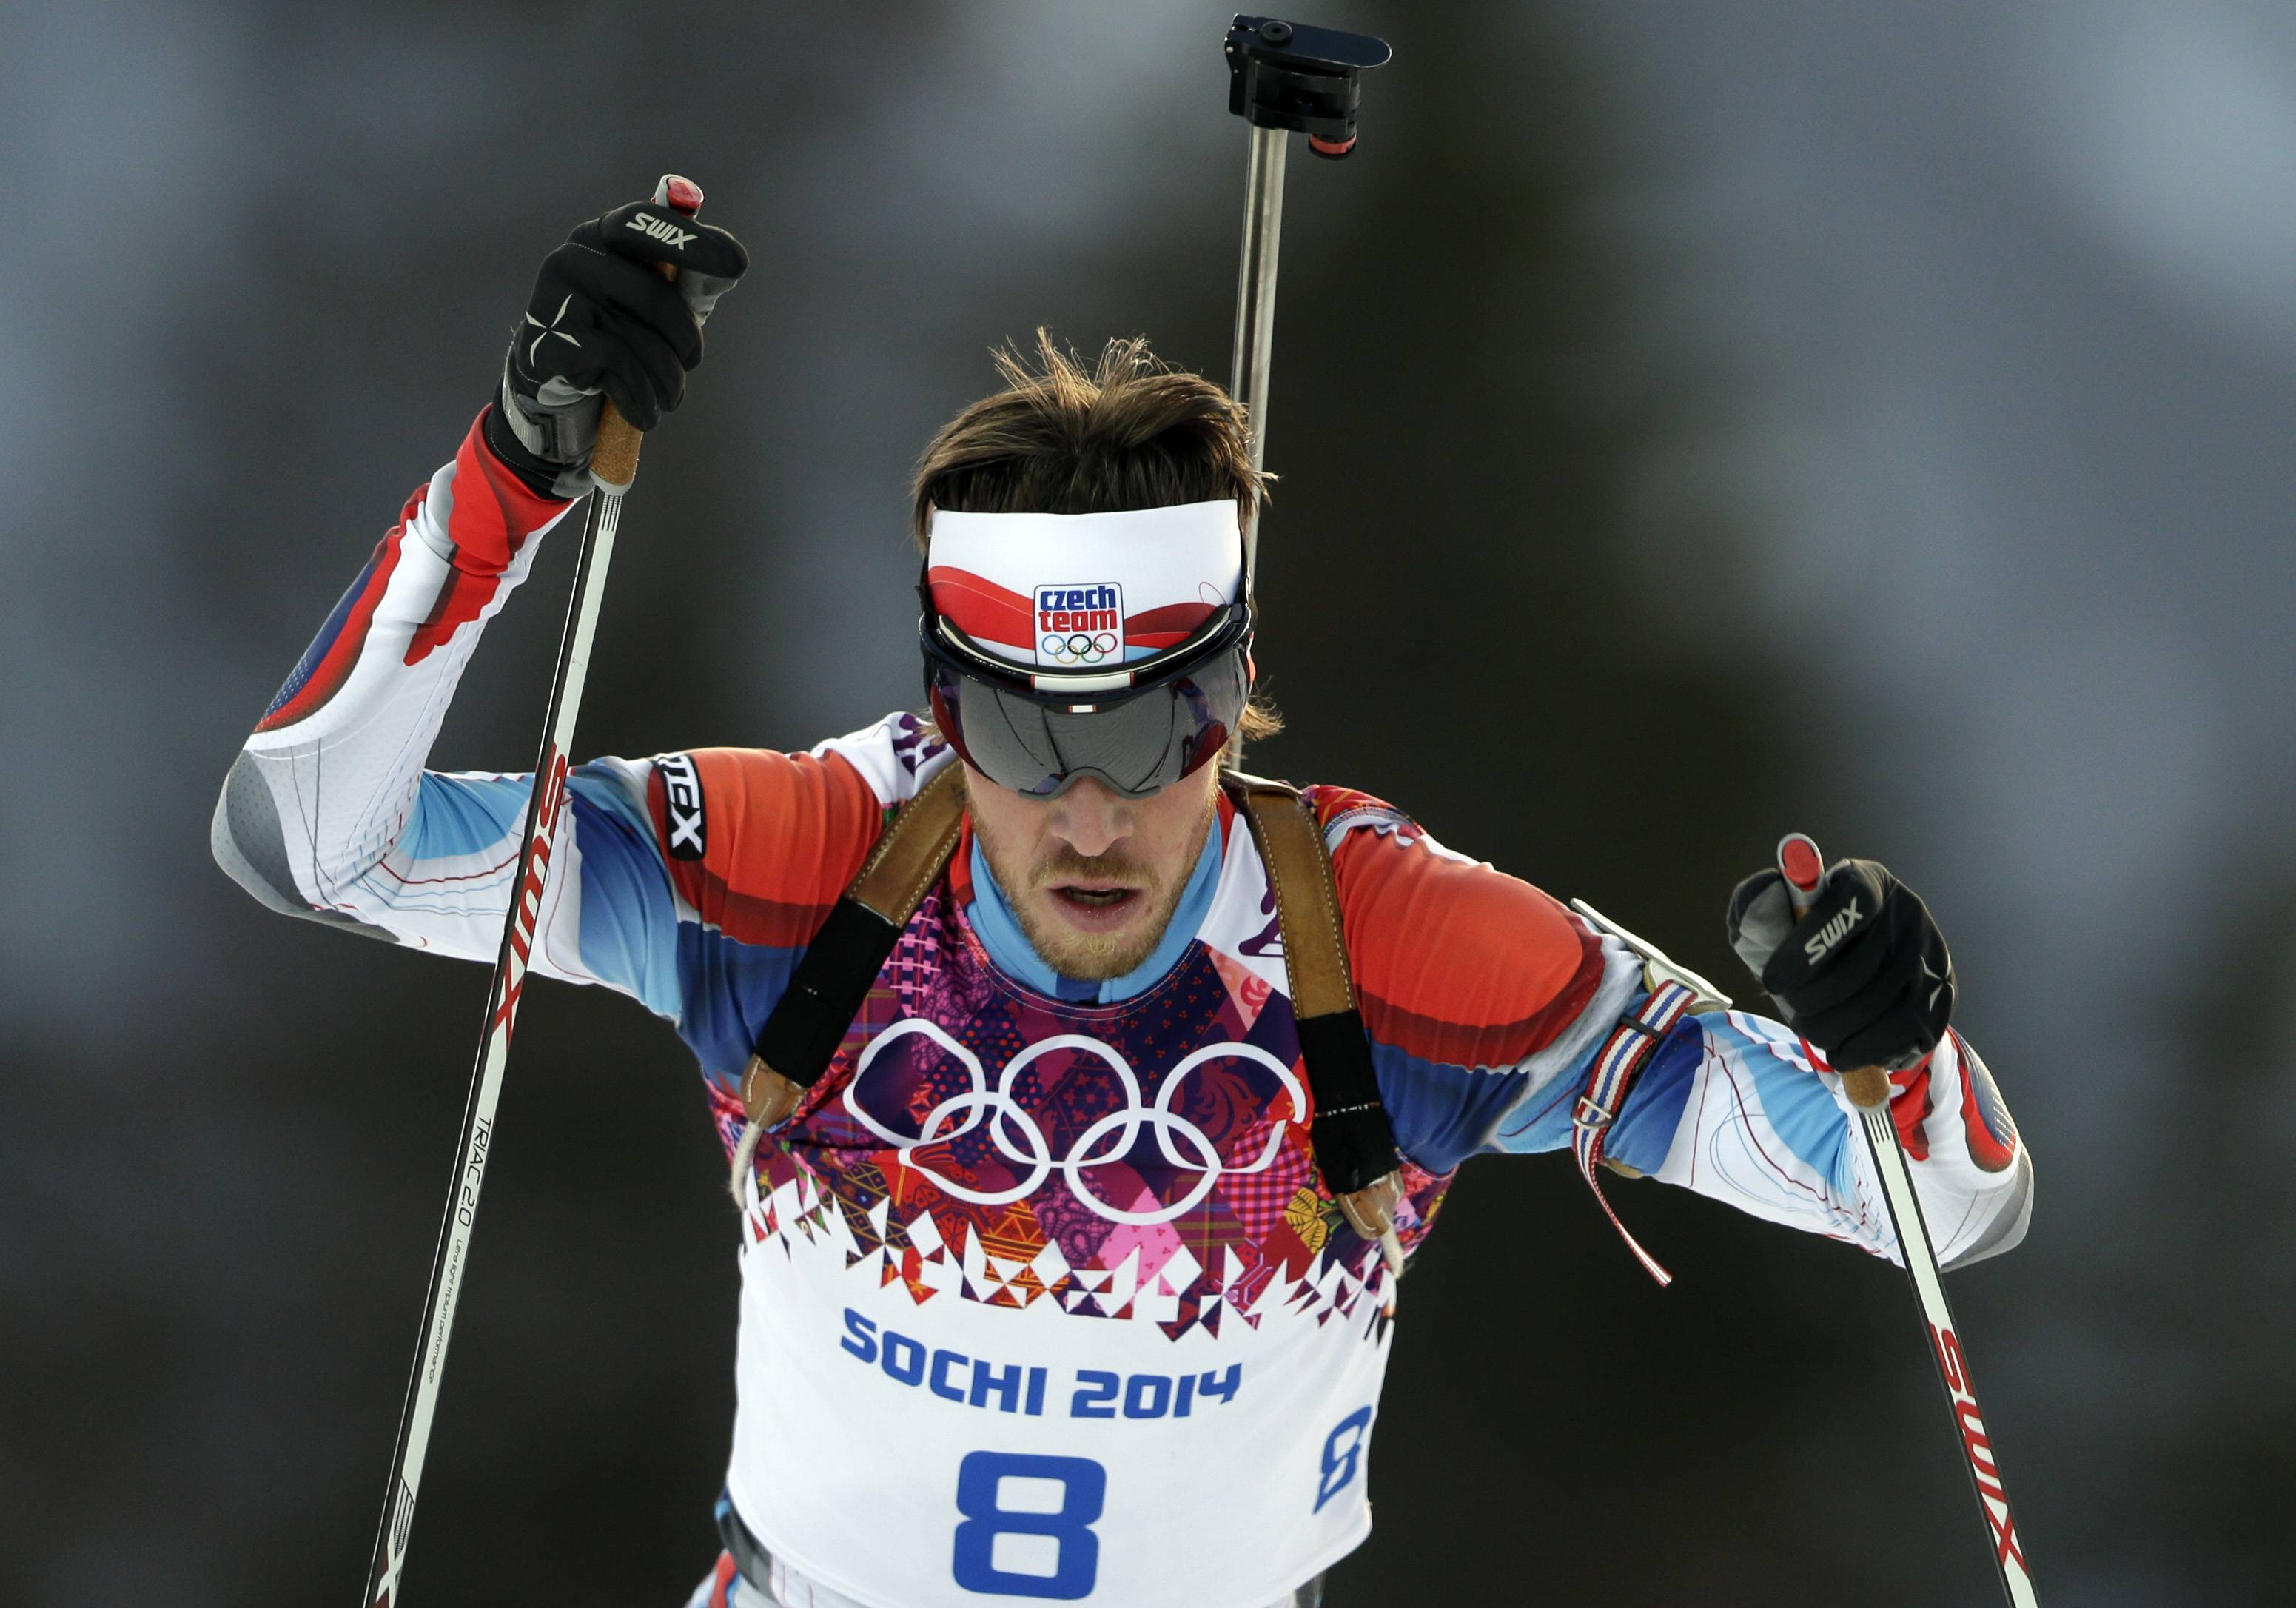 Czech Republic's Jaroslav Soukup competes during the men's biathlon 20k individual race.